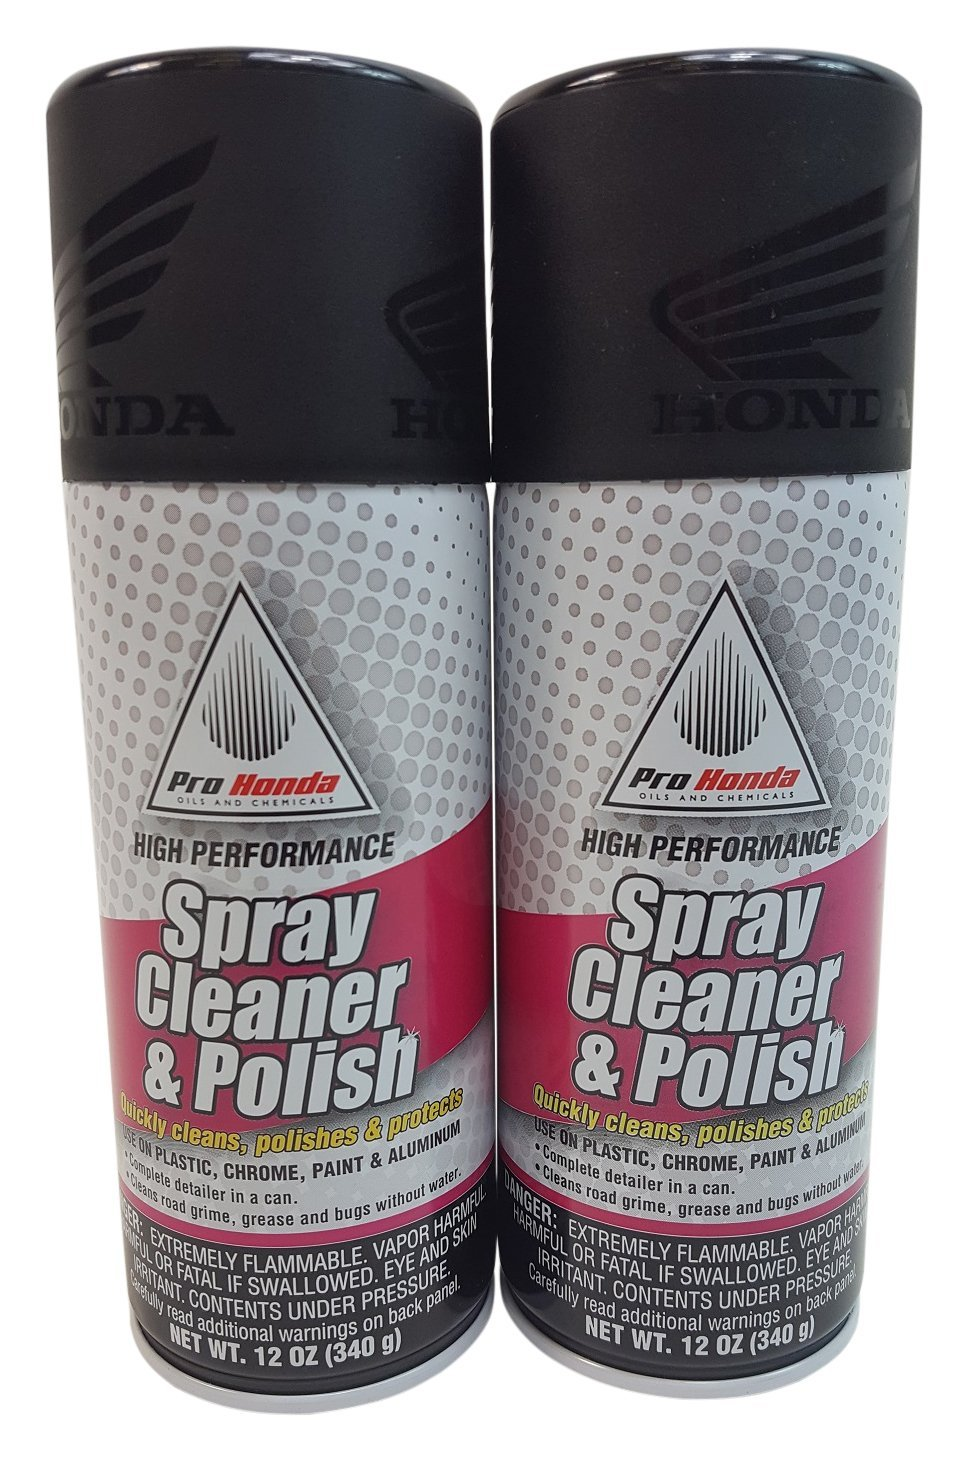 HONDA 08732-SCP00 Spray Cleaner and Polish, 12 oz., 2 Cans